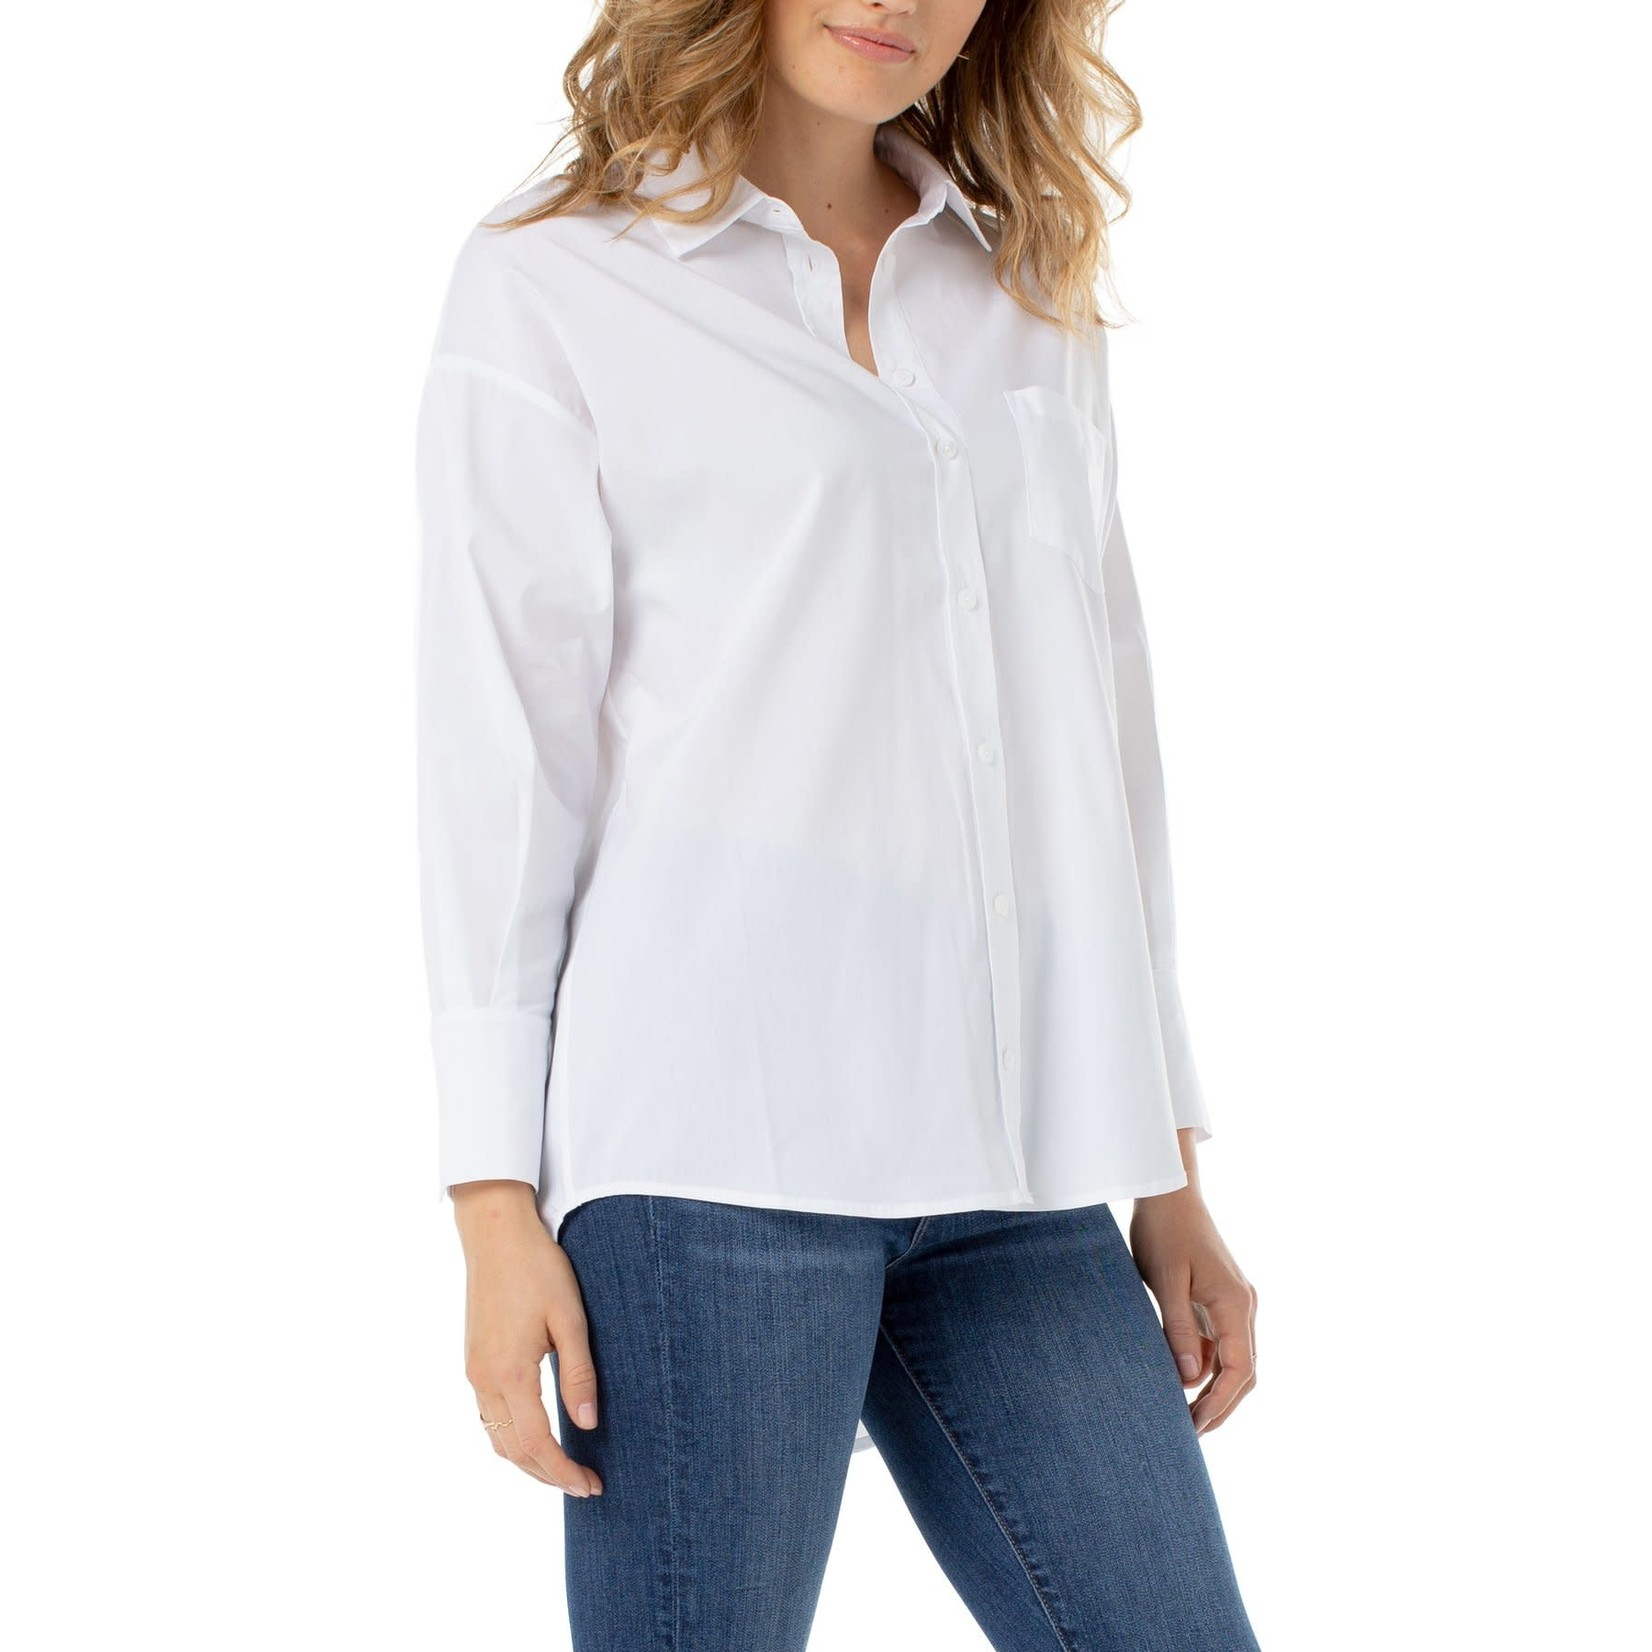 Liverpool Blouse/Oversized Classic White Button Front